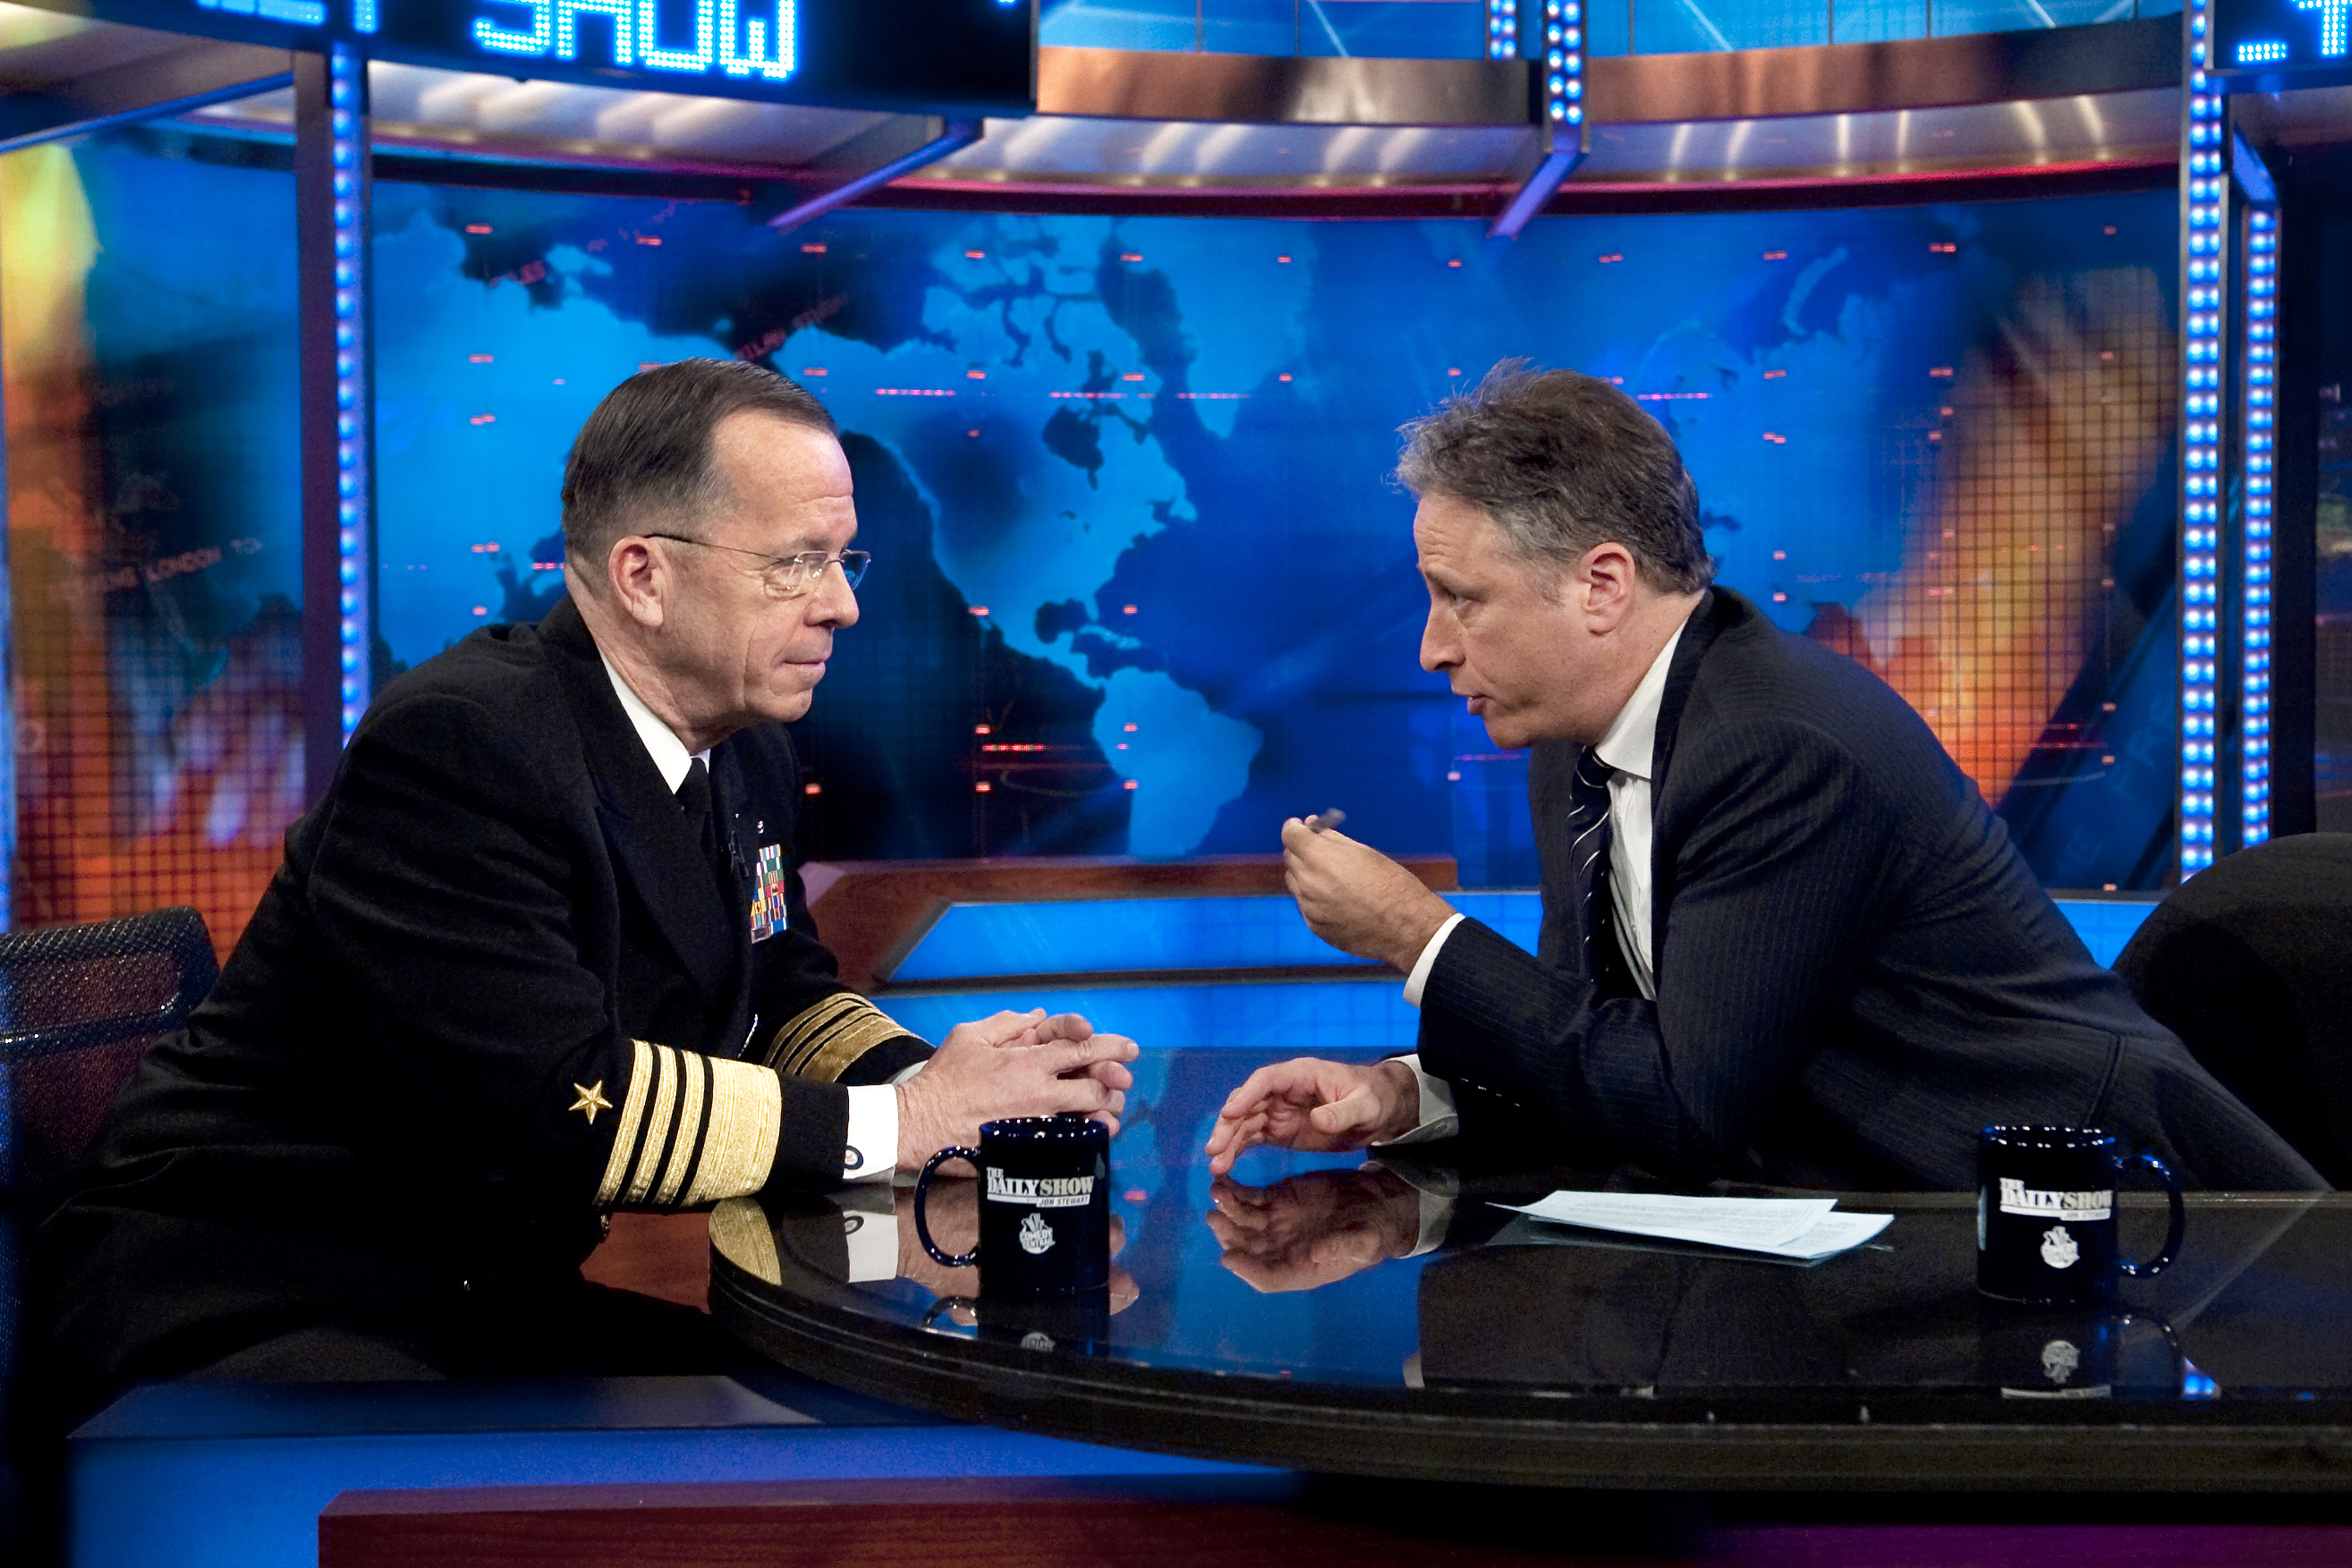 File:Jon Stewart and Michael Mullen on The Daily Show.jpg ...